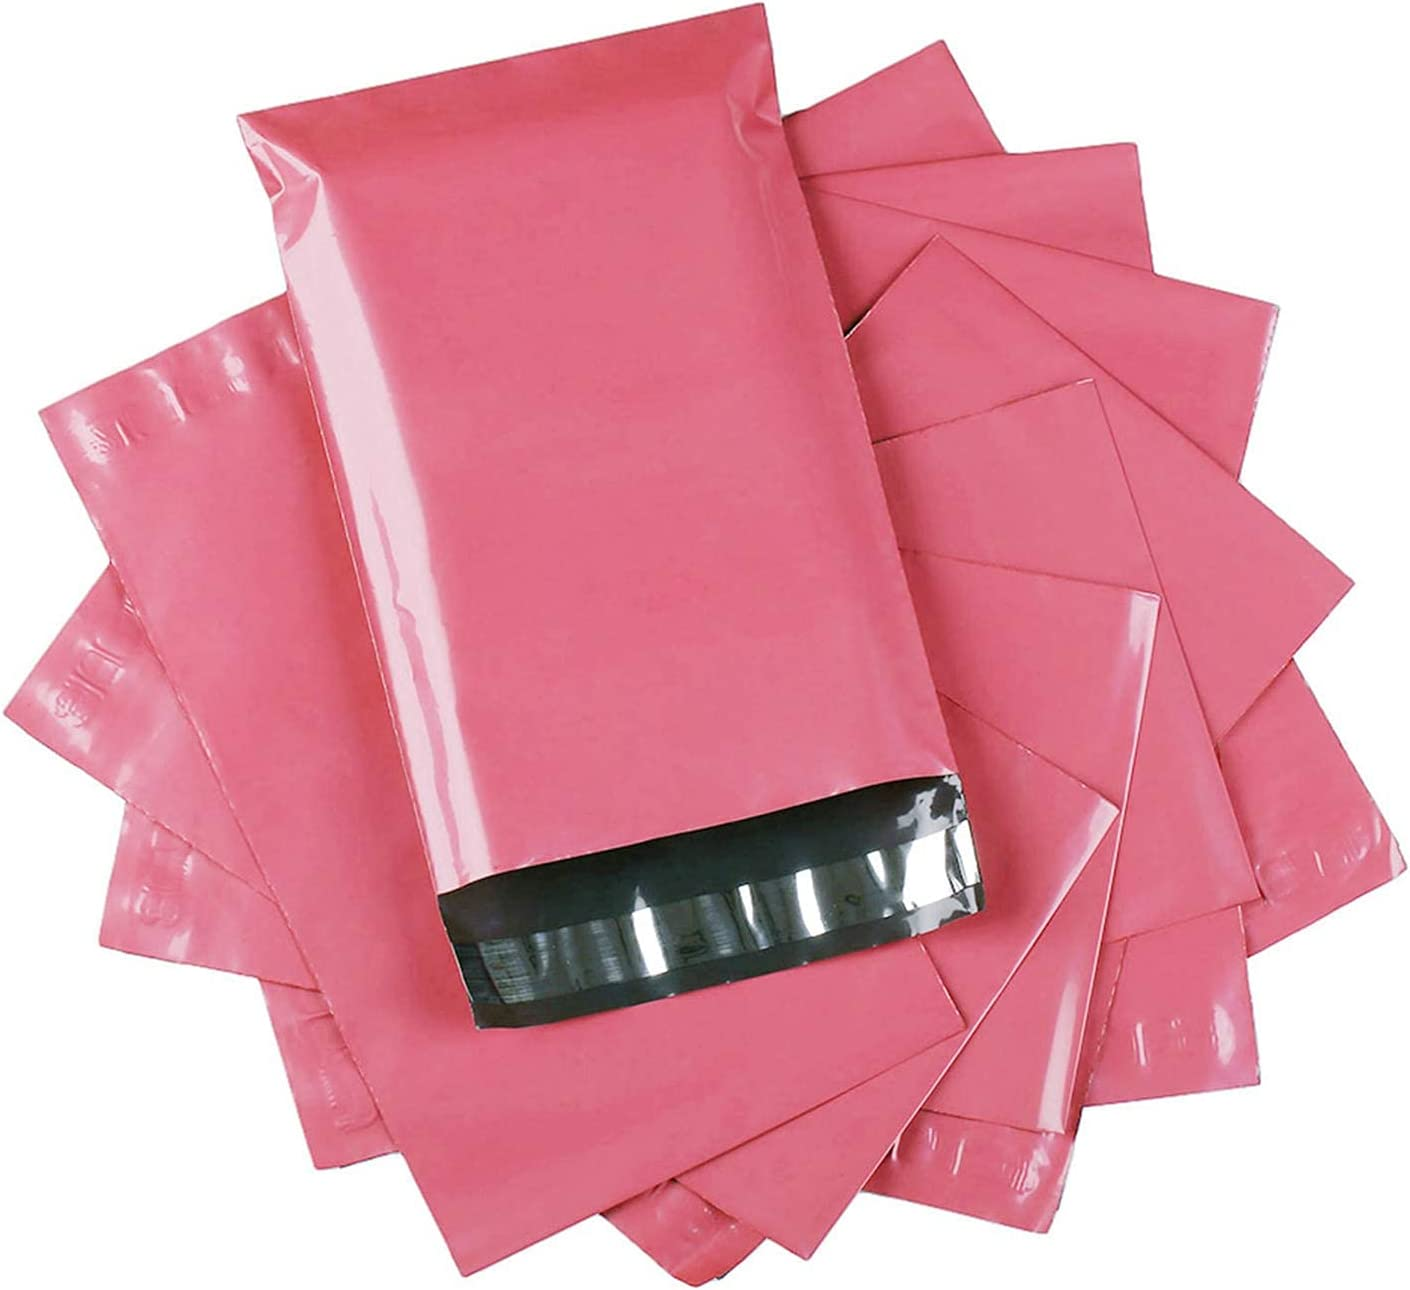 SUNN Hot Pink 12x15.5 Inch 100Pcs Envelope Max 86% OFF W Mailers Postal Bags Ranking TOP16